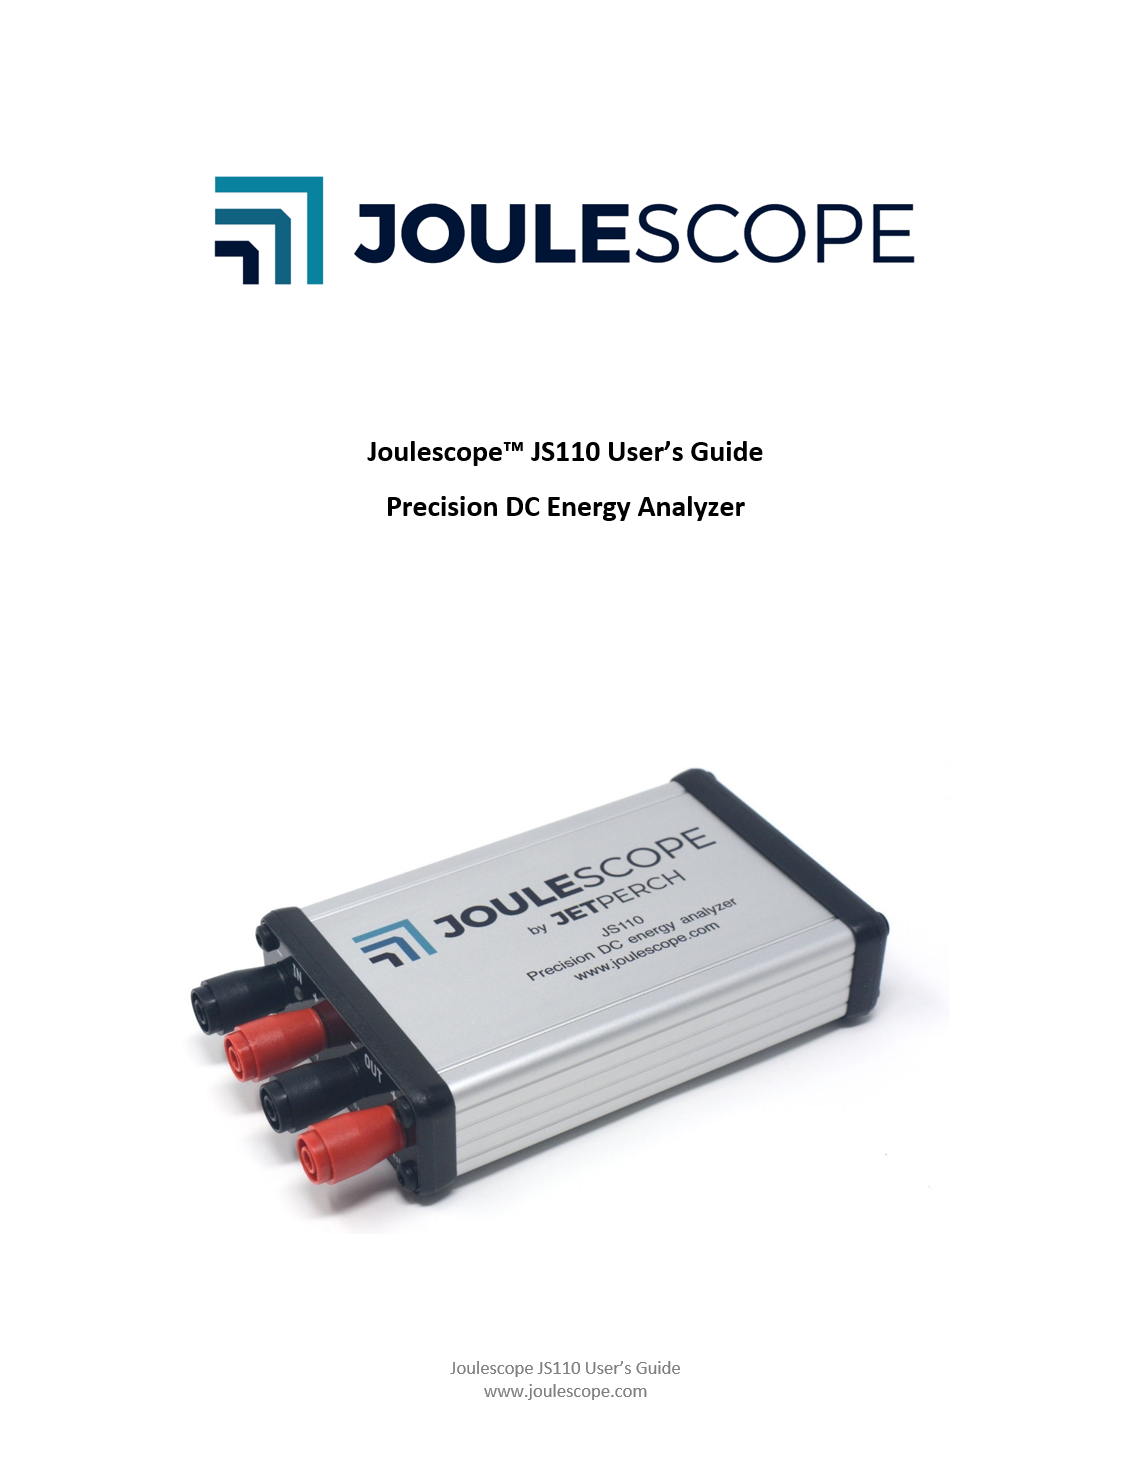 Joulescope User's Guide